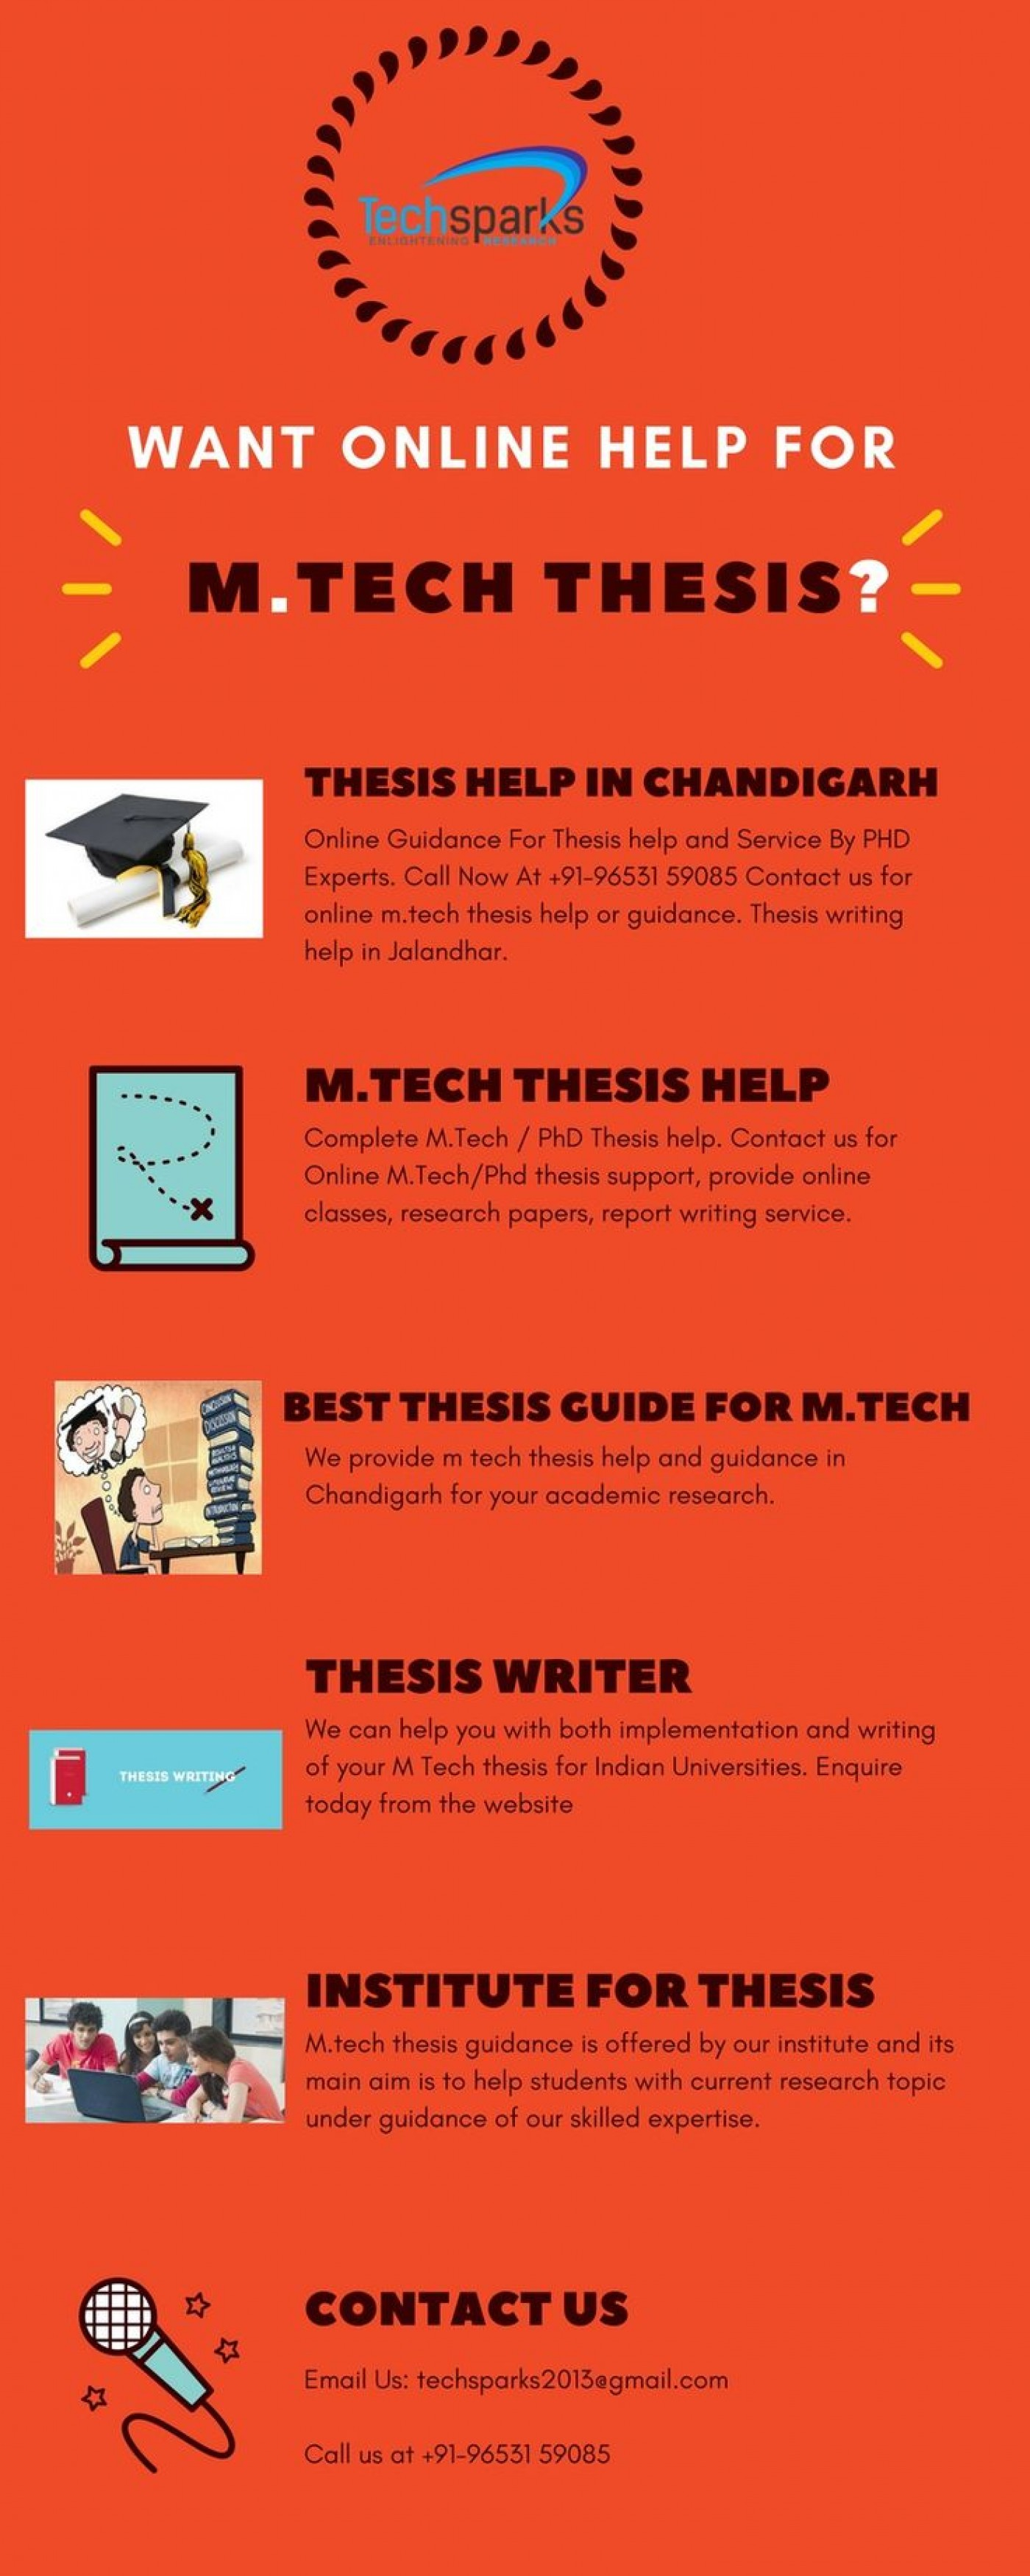 001 Academic Research Paper Writing Services In India Marvelous Best 1400